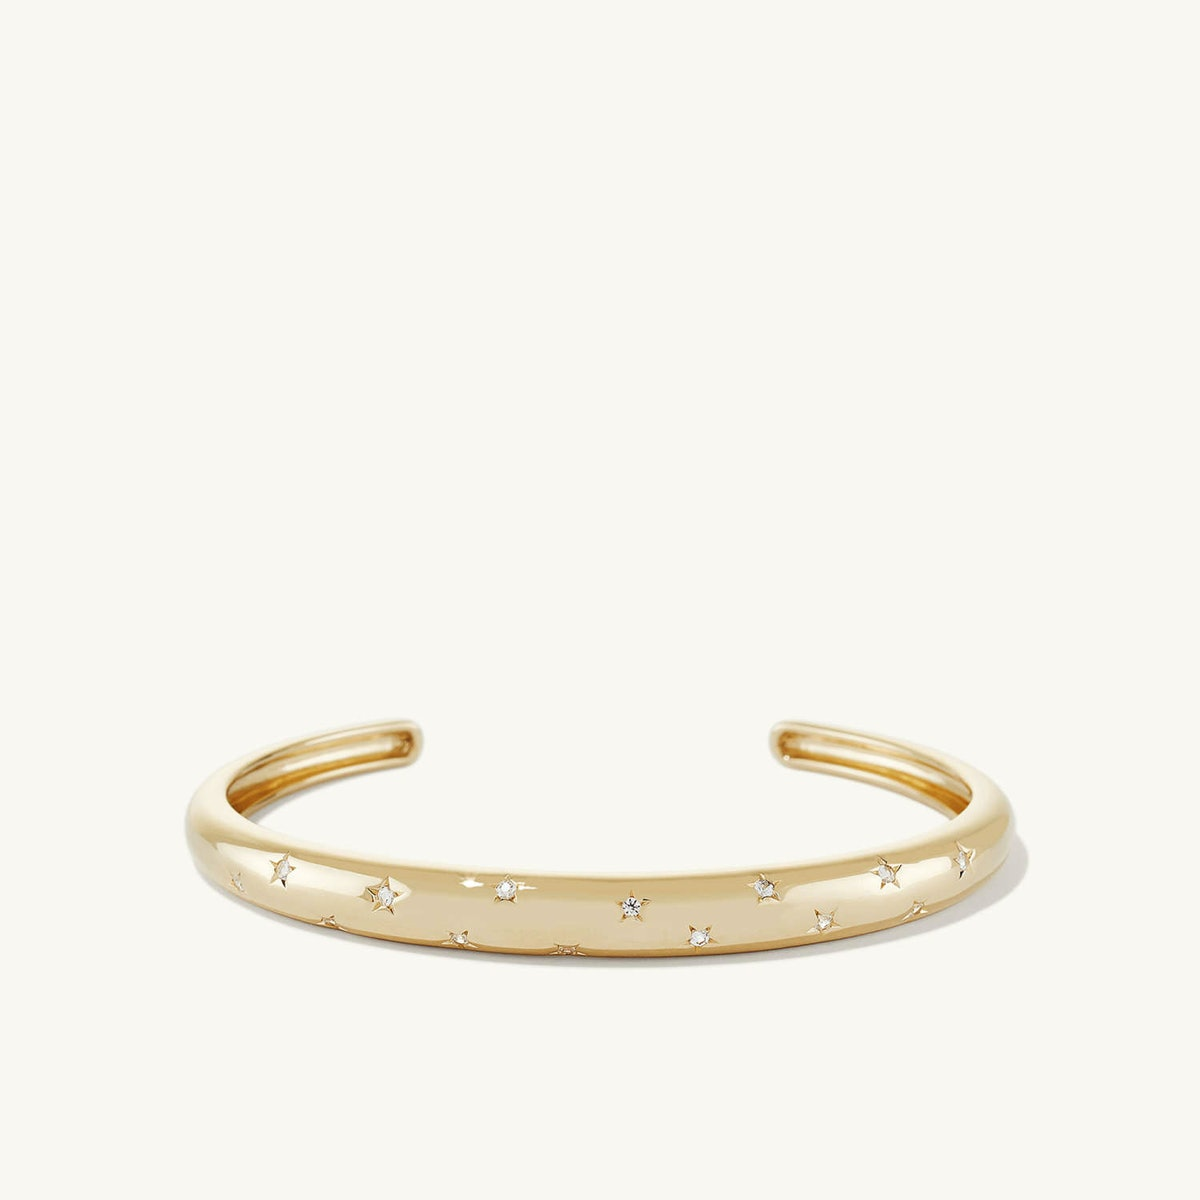 LA Dôme cuff bracelet in gold vermeil with white sapphires from Mejuri.